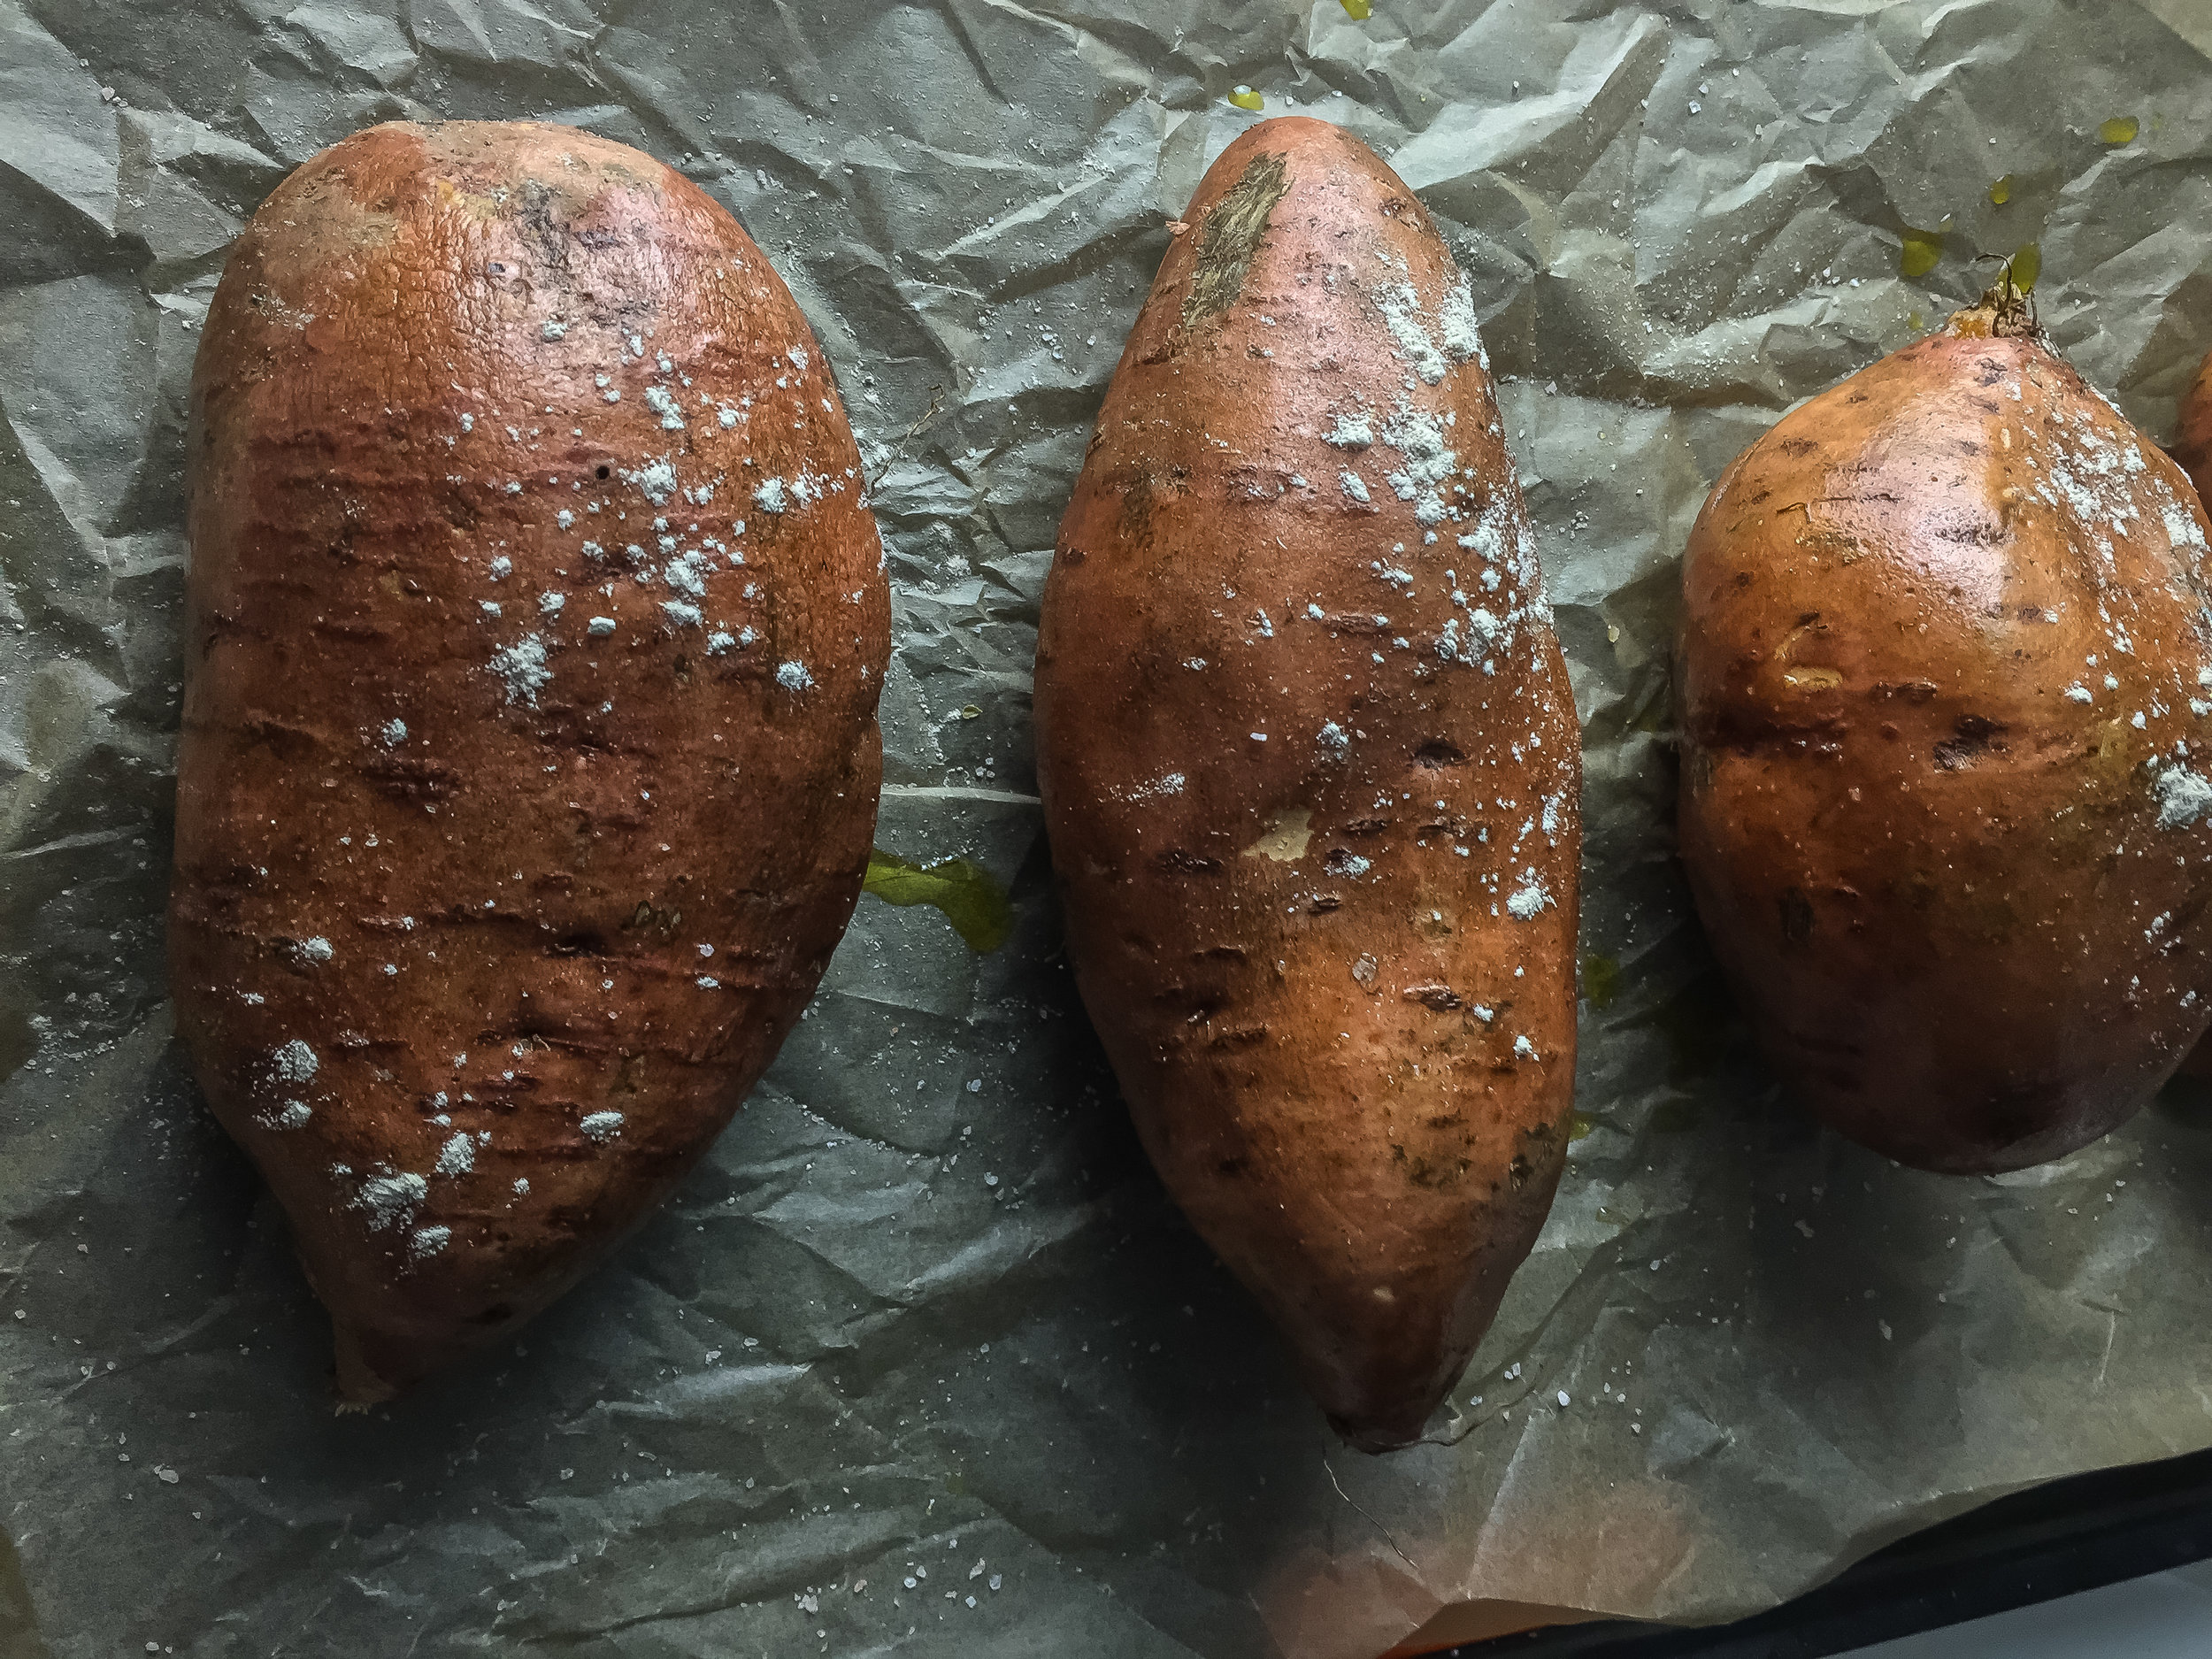 1. To start, rub olive oil and garlic salt on the potato skins. Wrap potatoes in parchment paper (I don't use aluminum foil) and bake for 45-50 minutes until a fork can pierce the potato easily and slide through with just a bit of resistance.